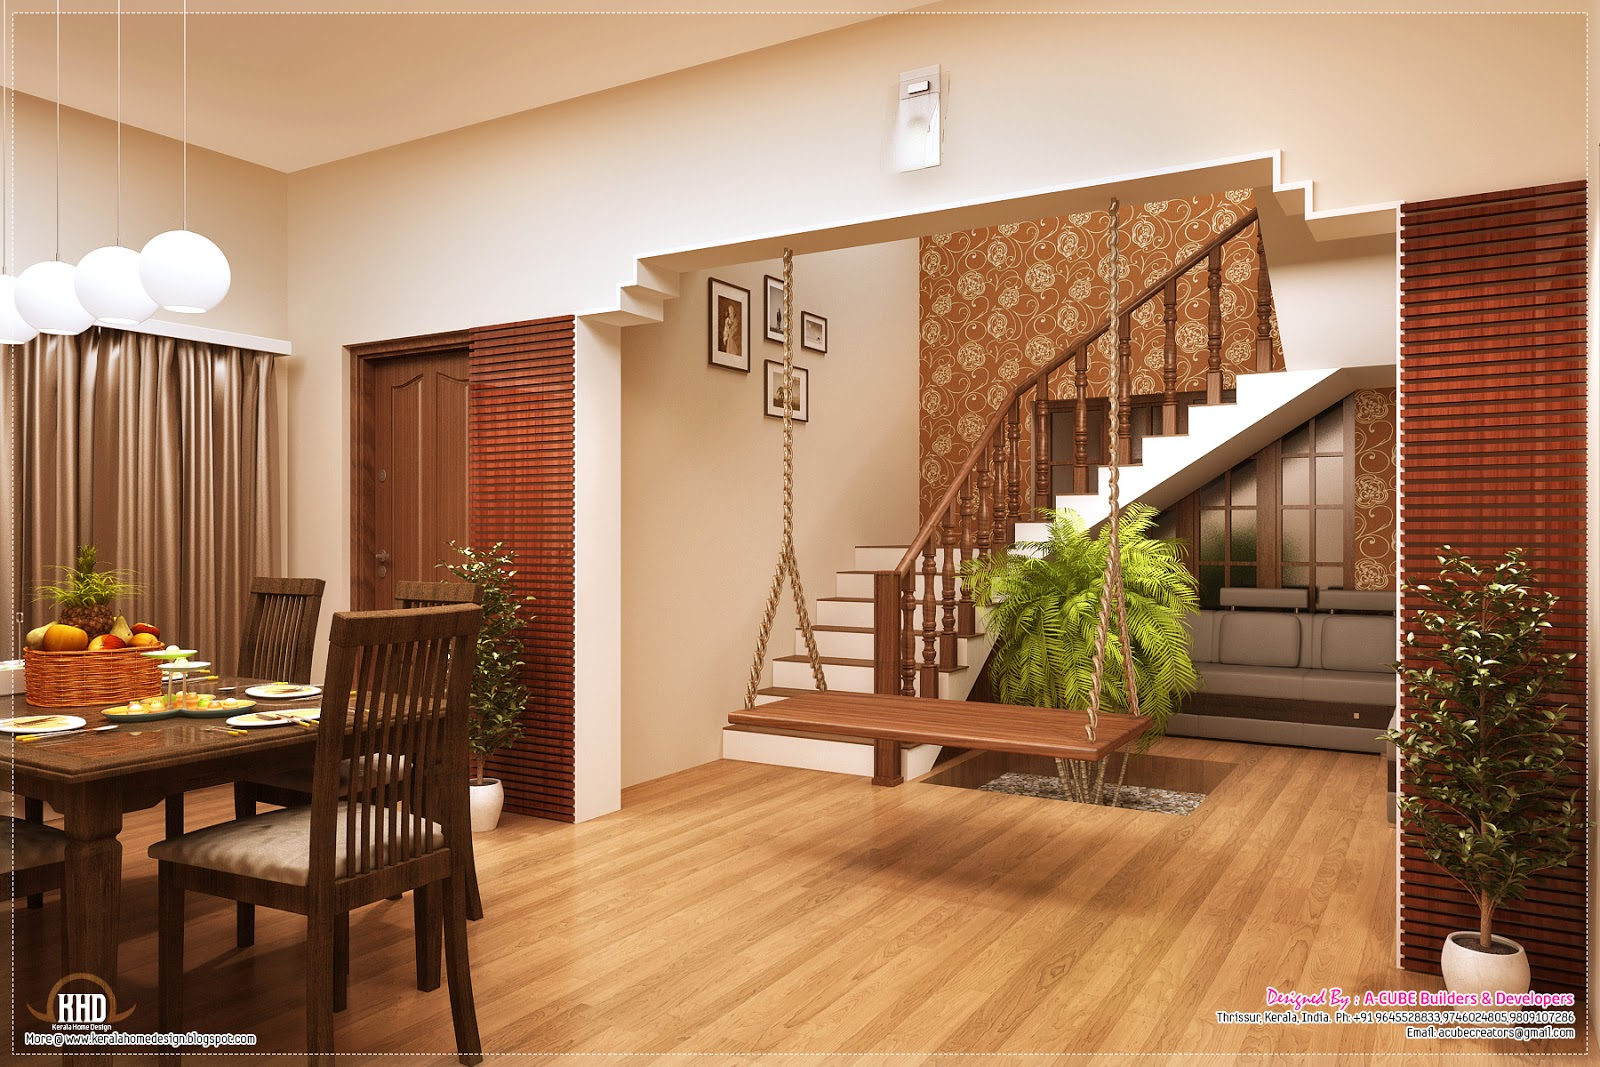 Awesome interior decoration ideas kerala home design and for Interior designs in kerala